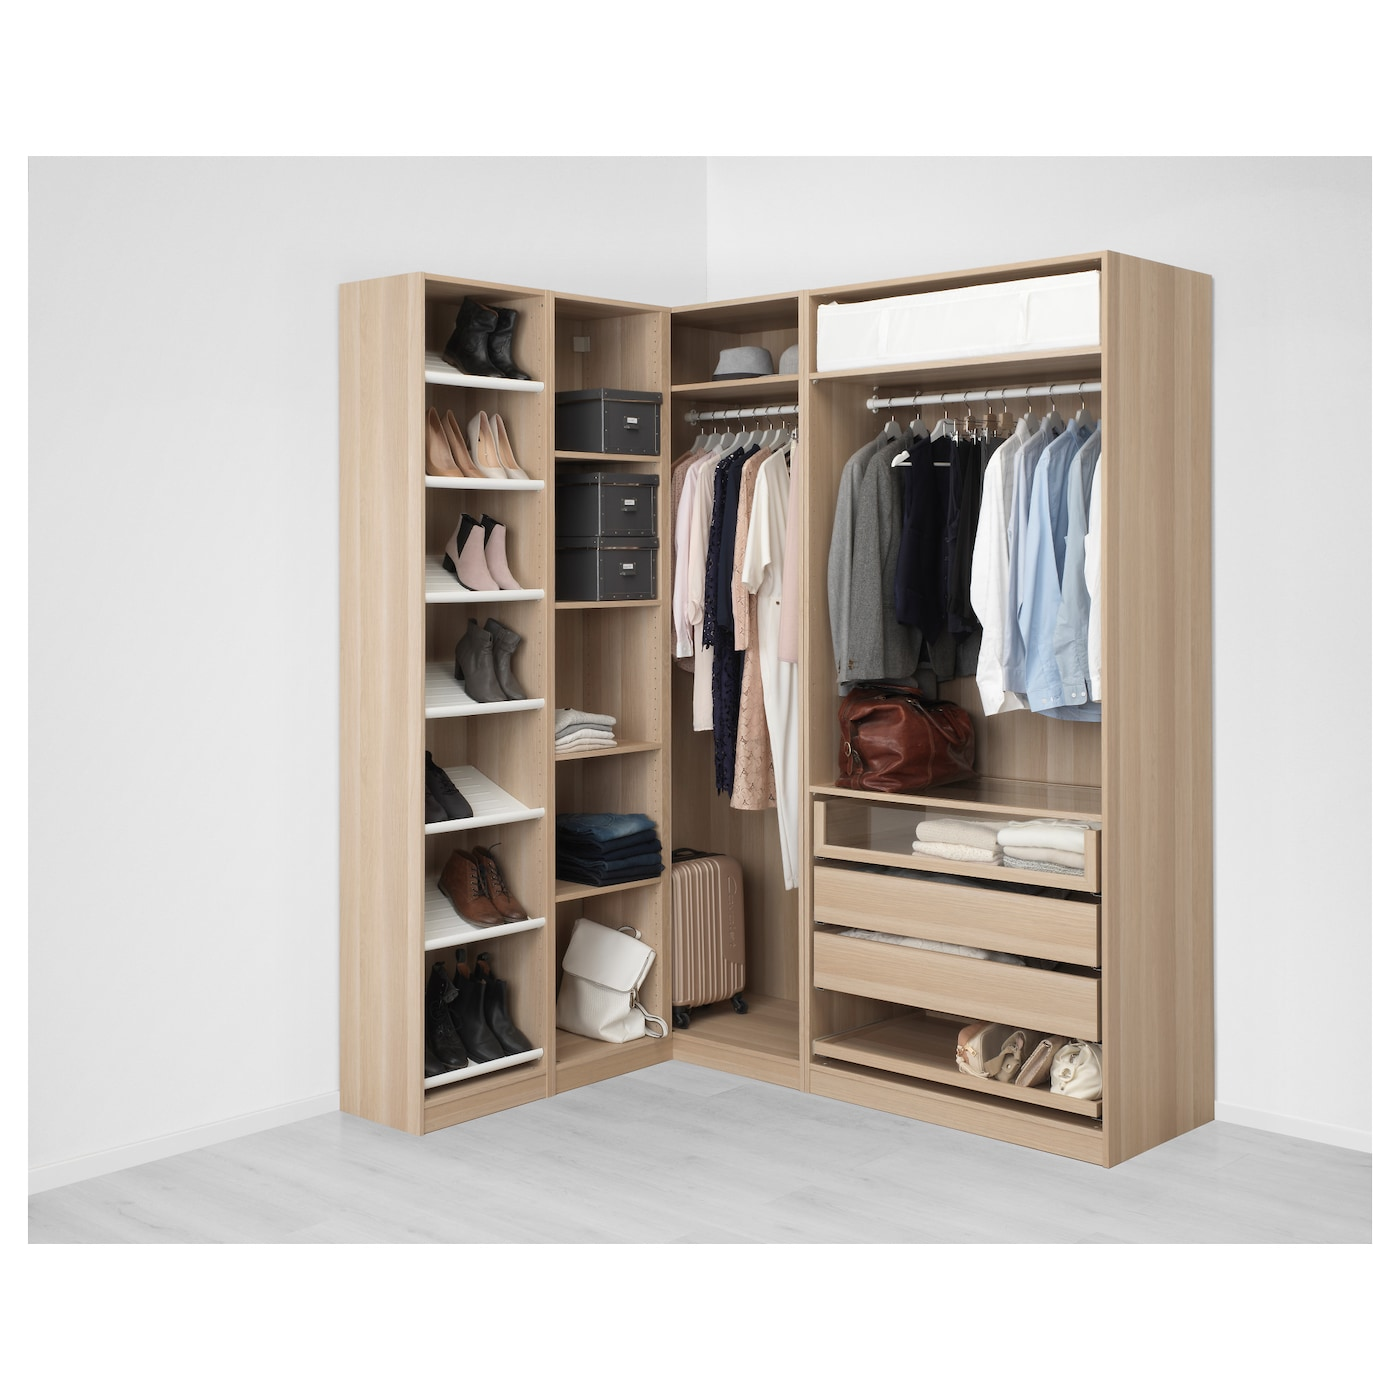 Pax corner wardrobe white stained oak effect nexus vikedal 160 188 x 236 cm ikea for Creation armoire ikea